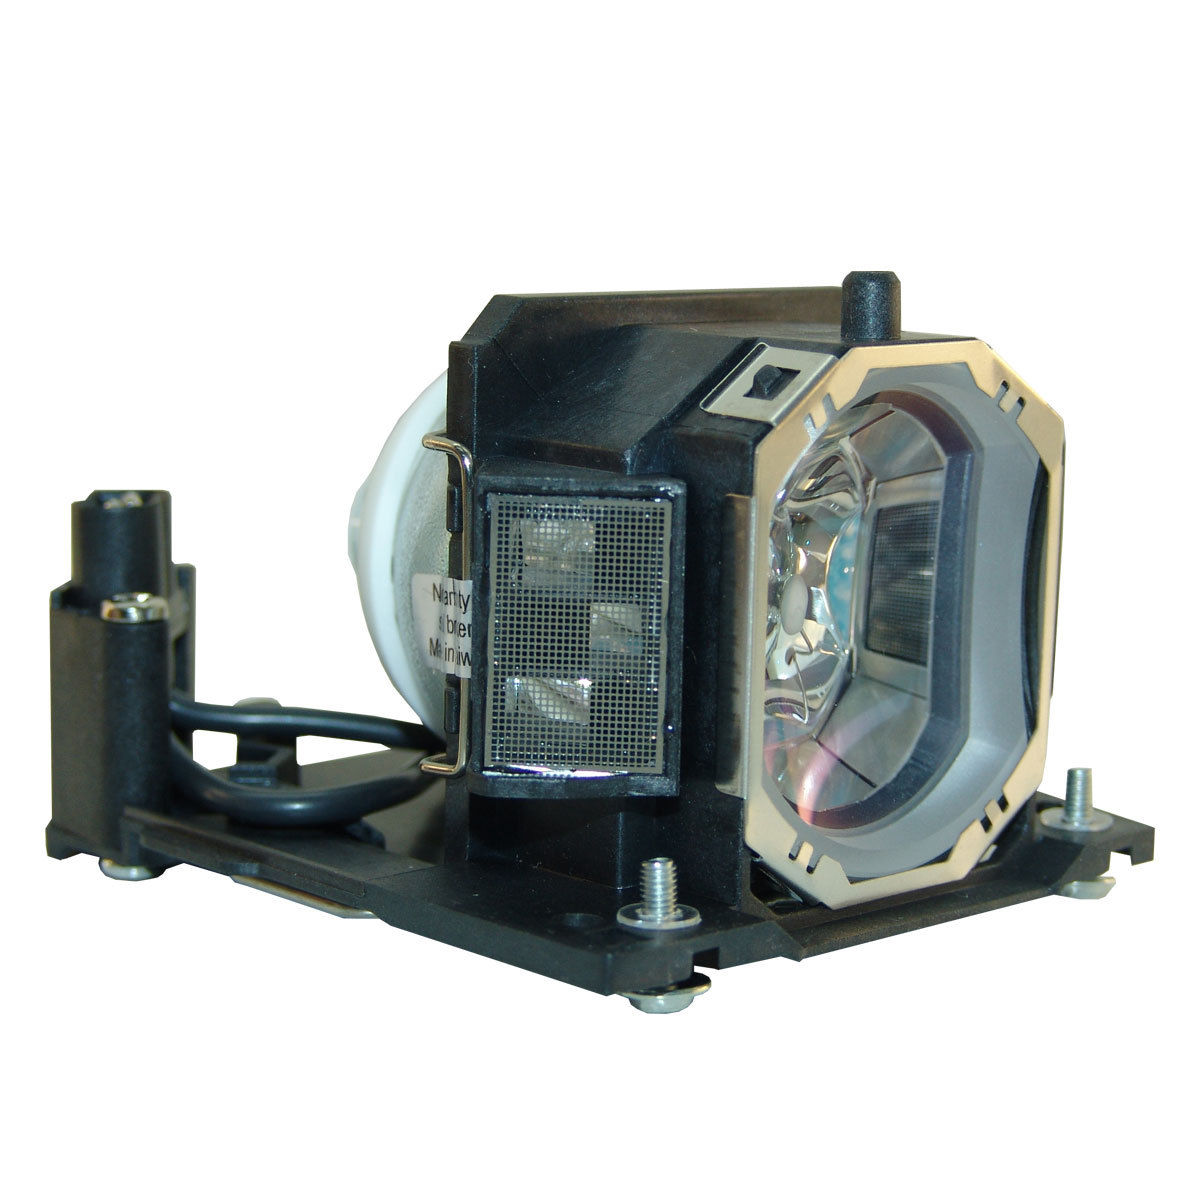 DT01141 DT-01141 for HITACHI CP-X2520 CP-X3020 ED-X50 ED-X52 CP-X8 CP-X7 CP-X9 CP-WX8 Projector Bulb Lamp With Housing compatible projector lamp for hitachi dt01091 cp aw100n cp d10 cp dw10n ed aw100n ed aw110n ed d10n ed d11n hcp q3 hcp q3w